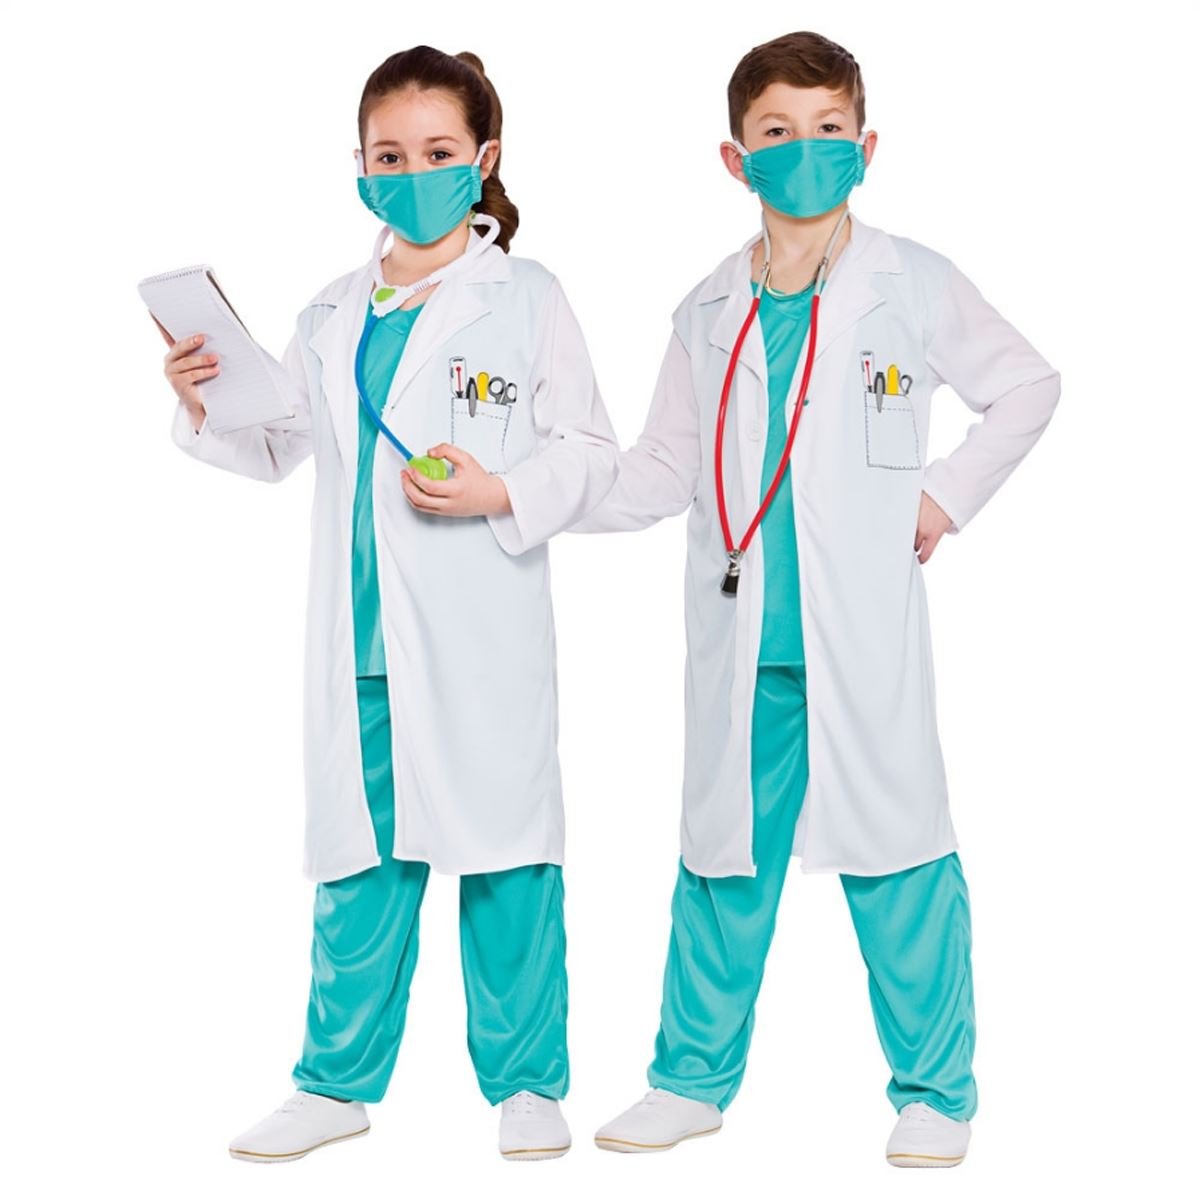 Child Hospital Doctor Nurse Surgeon Scrubs Fancy Dress Costume Boys Girls Outfit | eBay